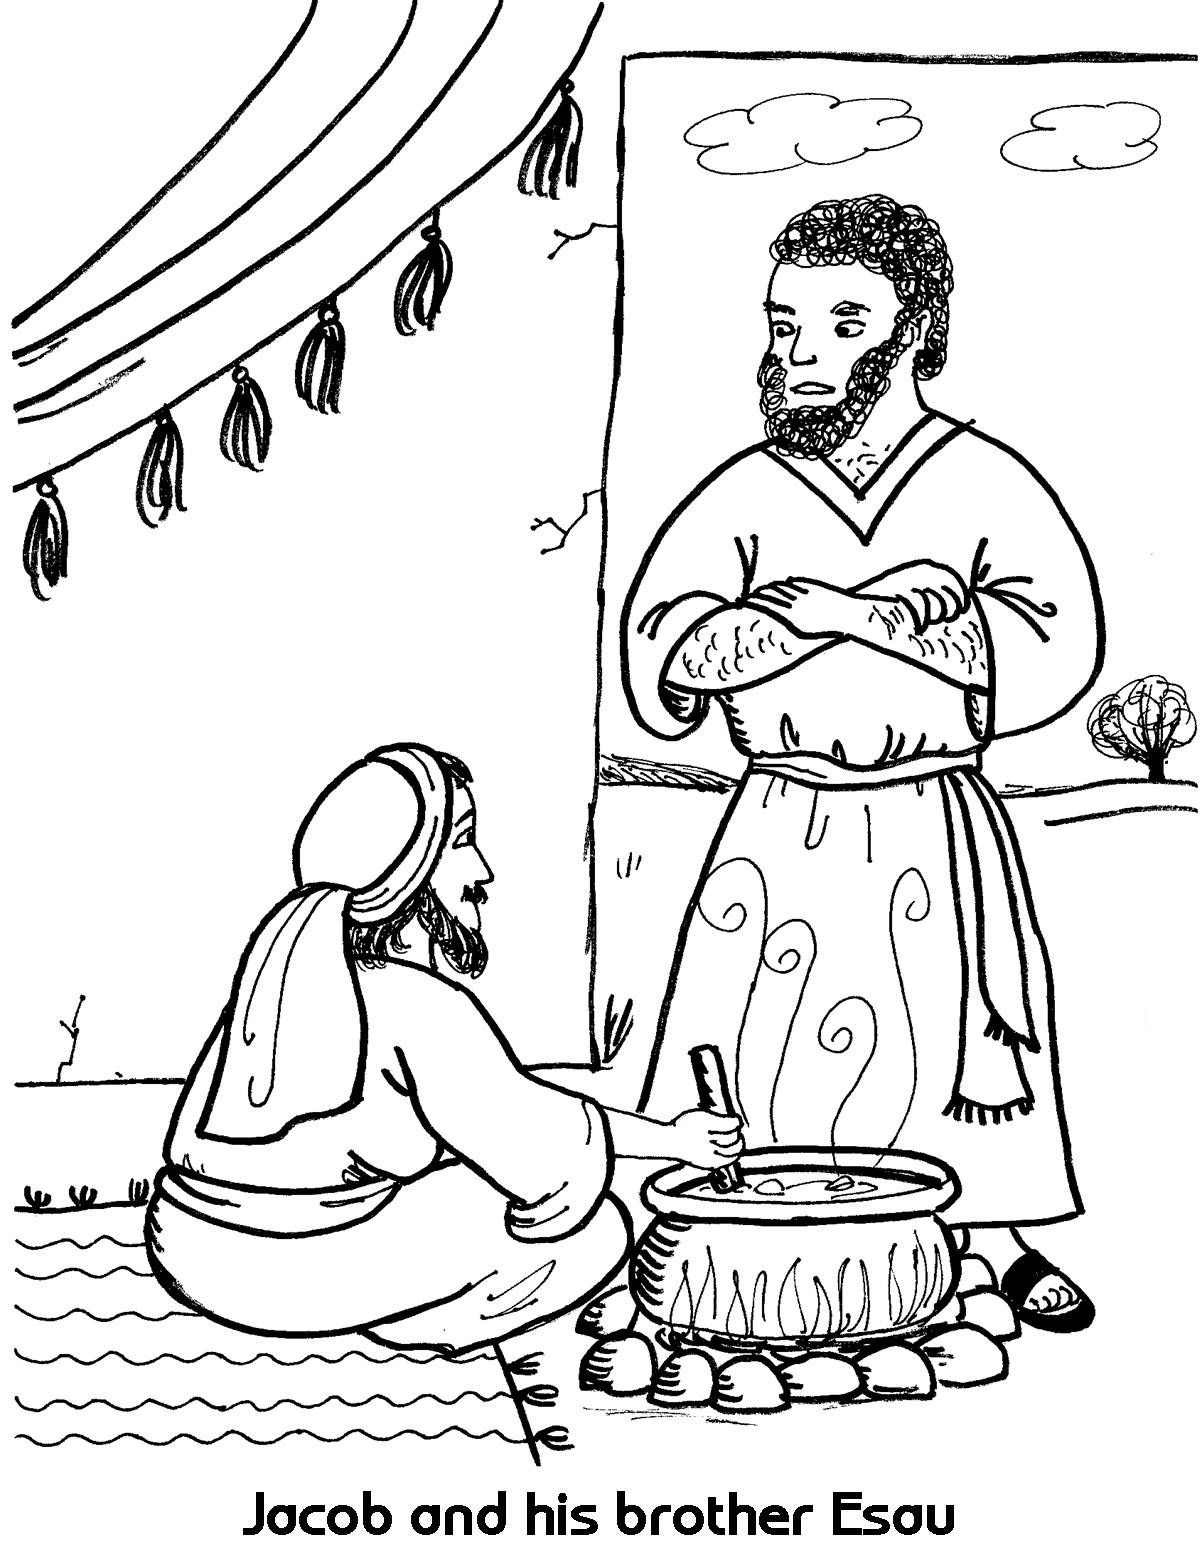 Jacob And Esau Coloring Pages Best Coloring Pages For Kids